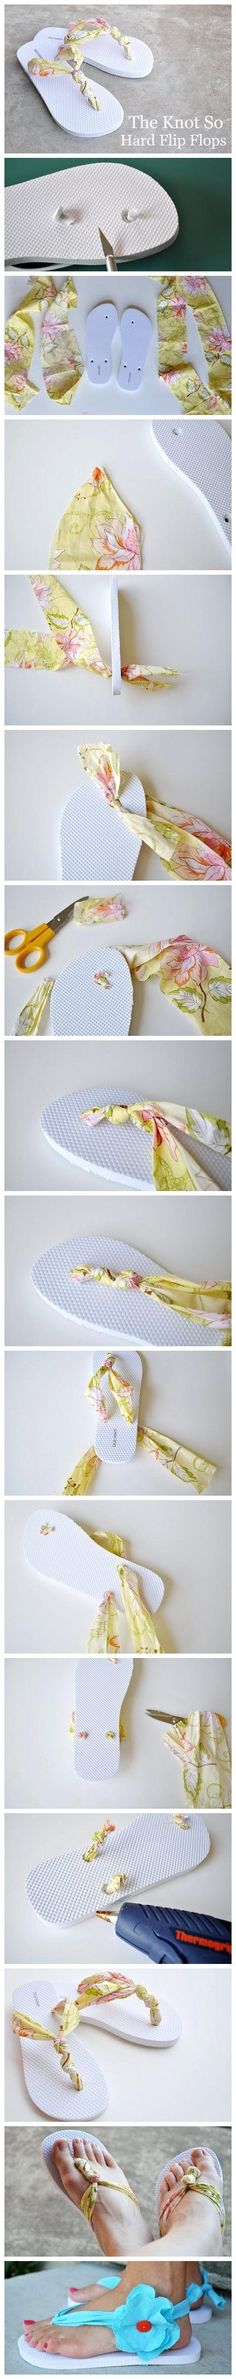 The Knot So Hard Flip Flops! I'm SO Doing This With An Old Pair!